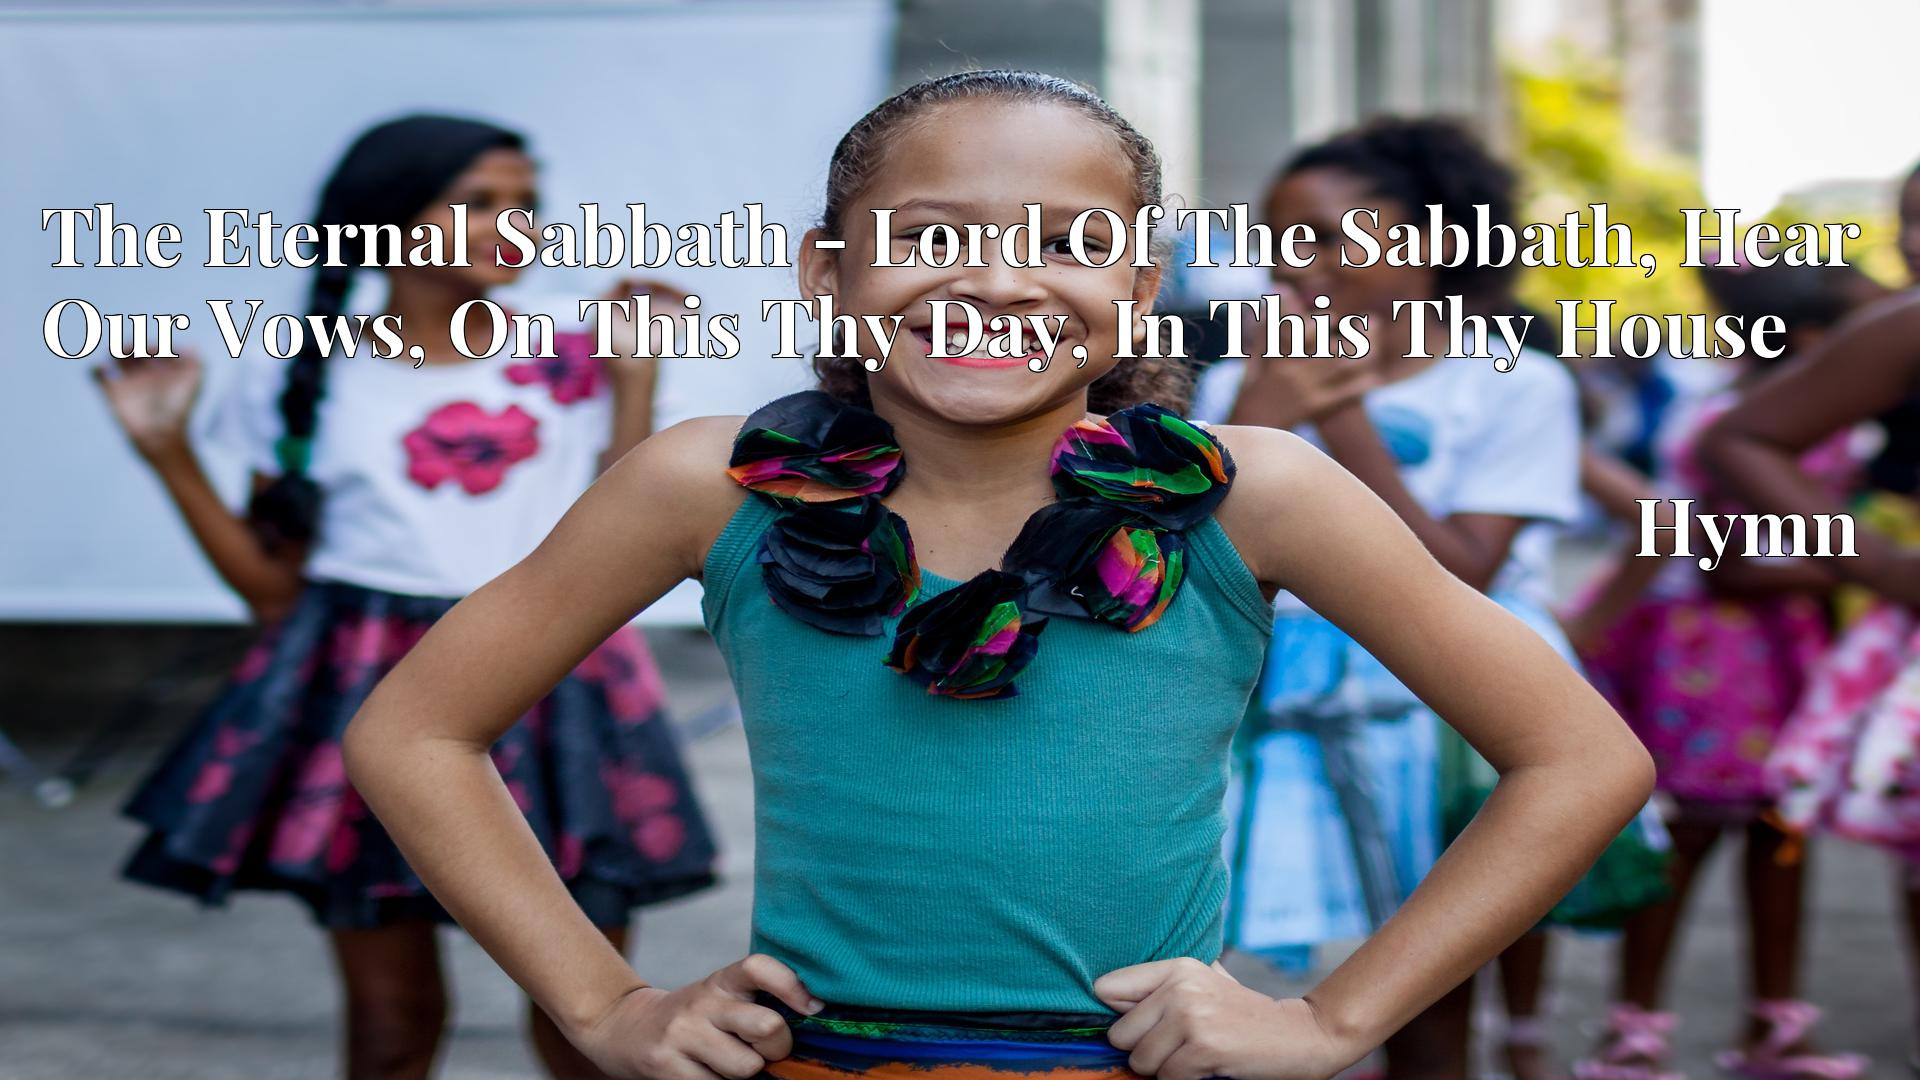 The Eternal Sabbath - Lord Of The Sabbath, Hear Our Vows, On This Thy Day, In This Thy House - Hymn